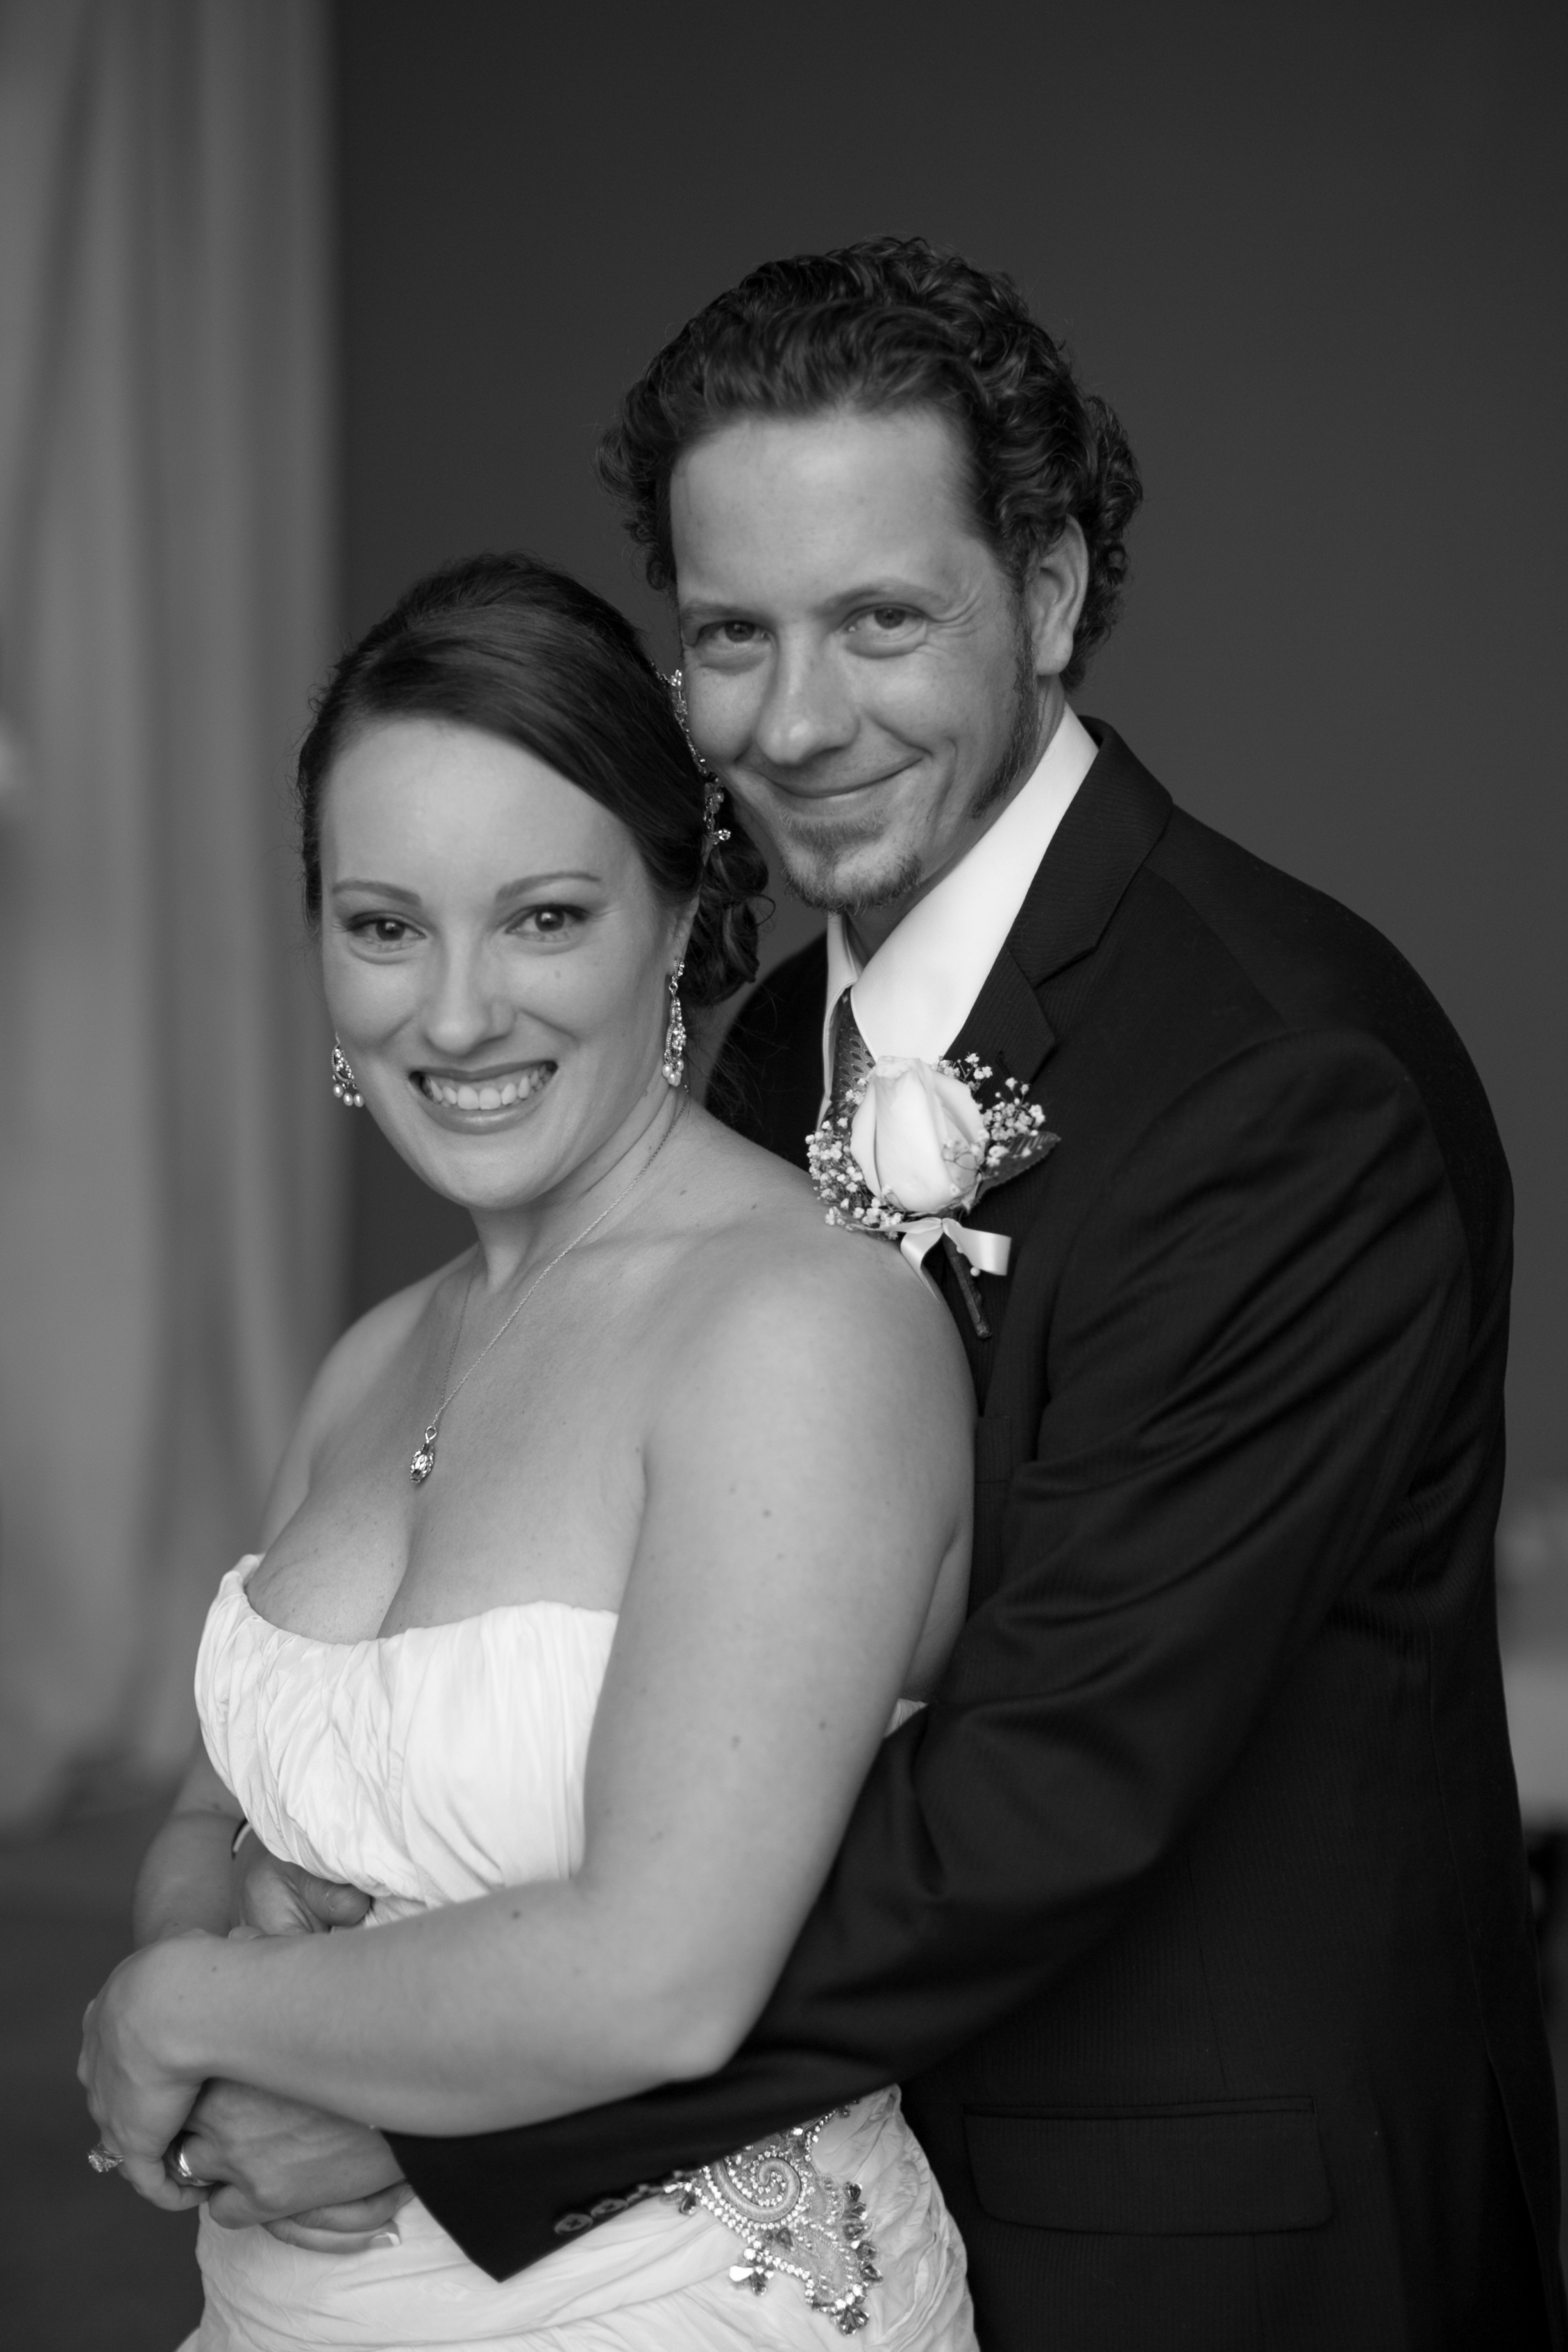 Photography by Meg Kumin - a photographer for The Vow Exchange